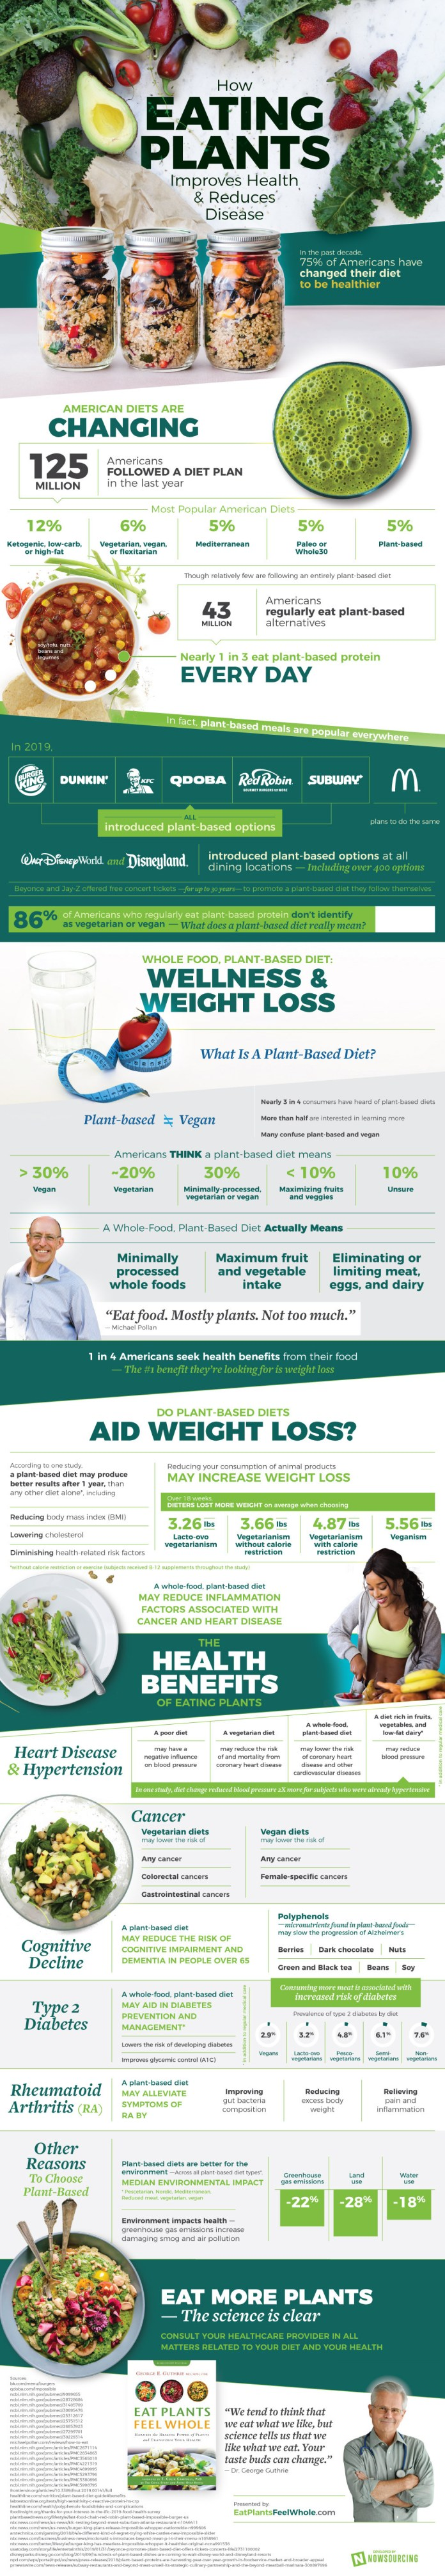 The Benefits of a Plant-Based Diet 1